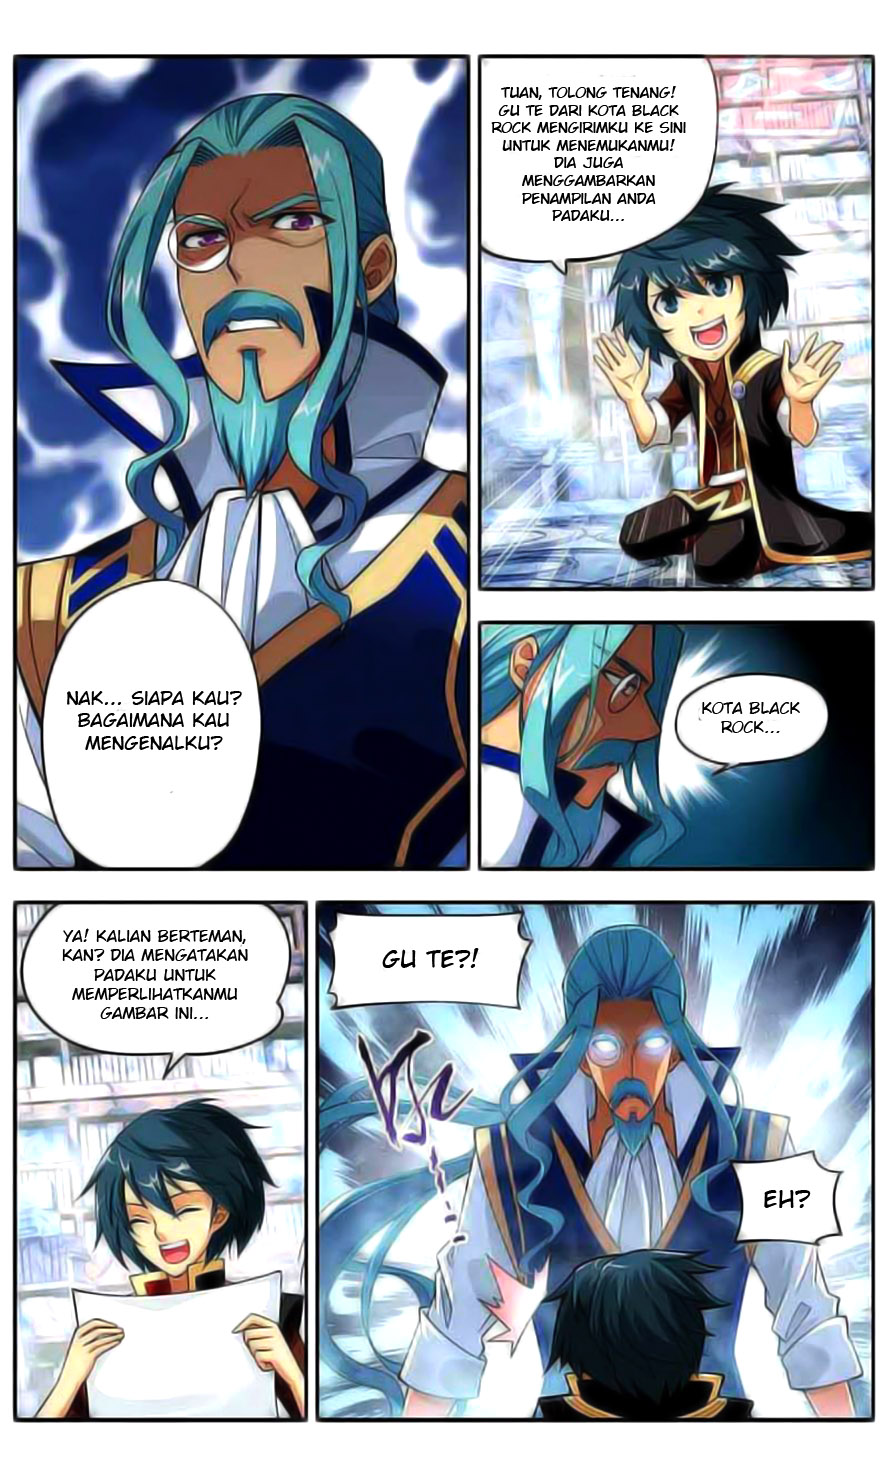 Dilarang COPAS - situs resmi www.mangacanblog.com - Komik battle through heaven 038 - chapter 38 39 Indonesia battle through heaven 038 - chapter 38 Terbaru 24|Baca Manga Komik Indonesia|Mangacan